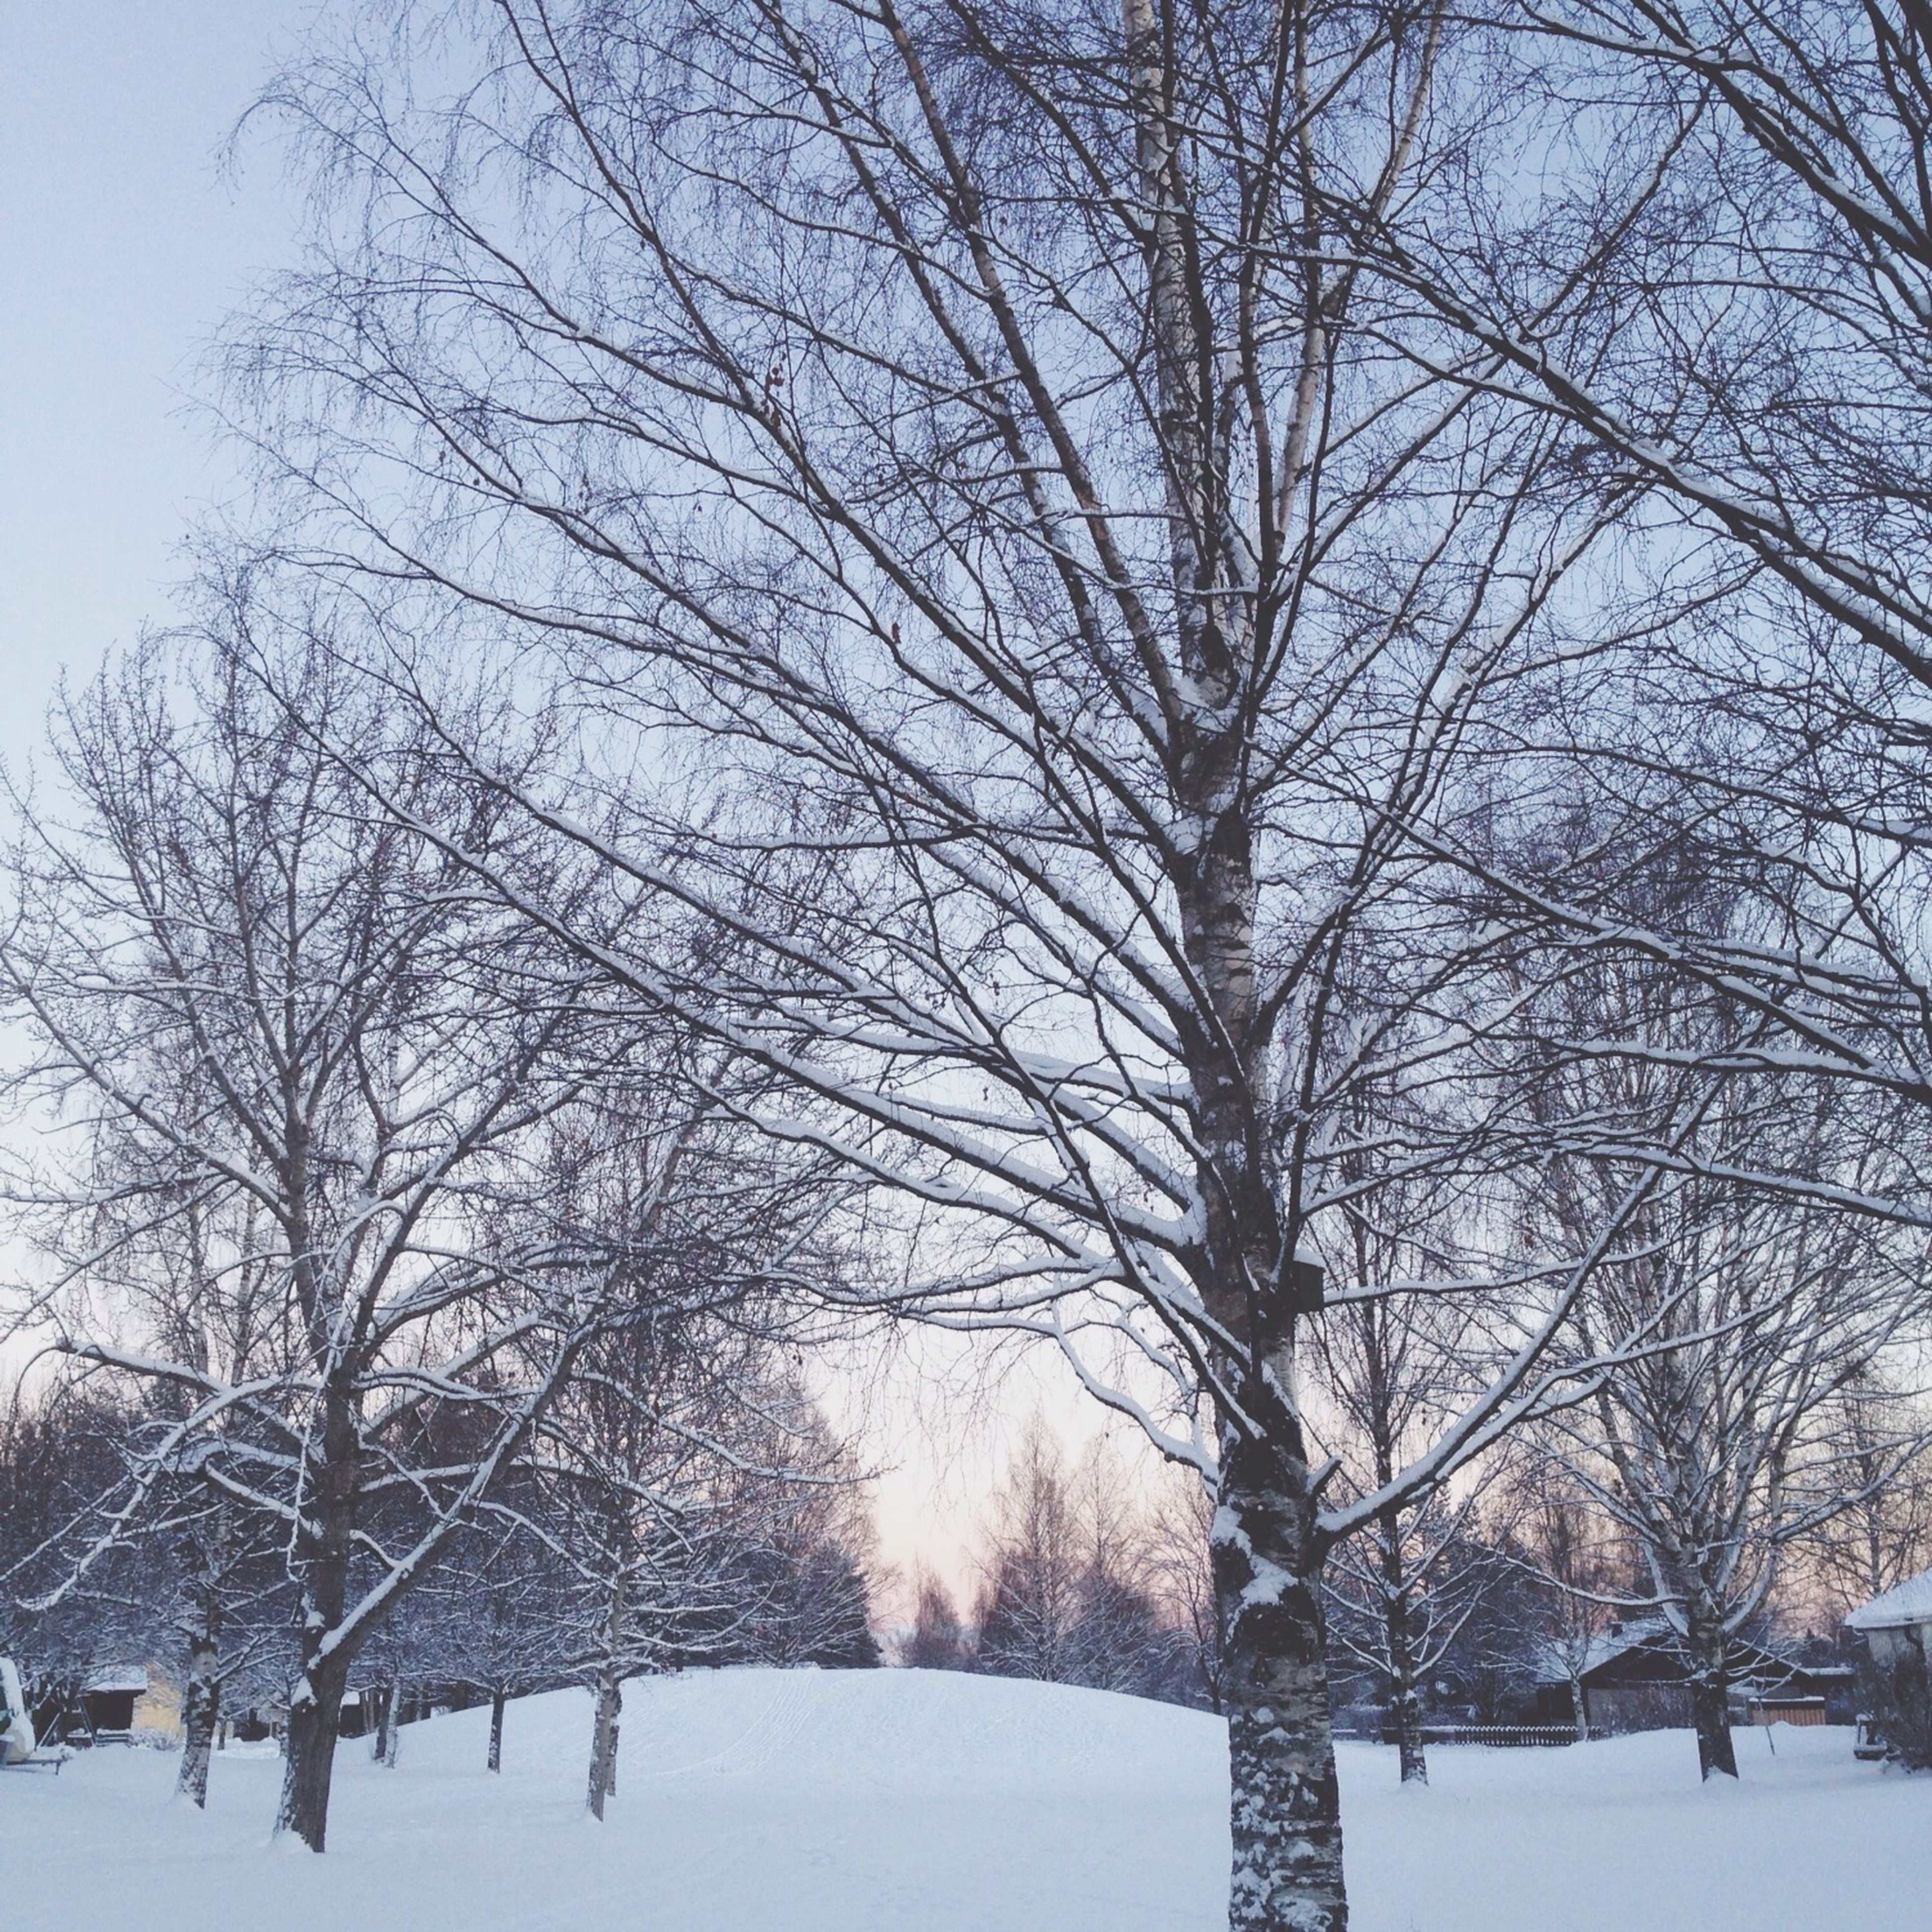 snow, winter, cold temperature, bare tree, tree, season, weather, covering, branch, tranquility, tranquil scene, nature, frozen, beauty in nature, scenics, landscape, field, covered, tree trunk, sky